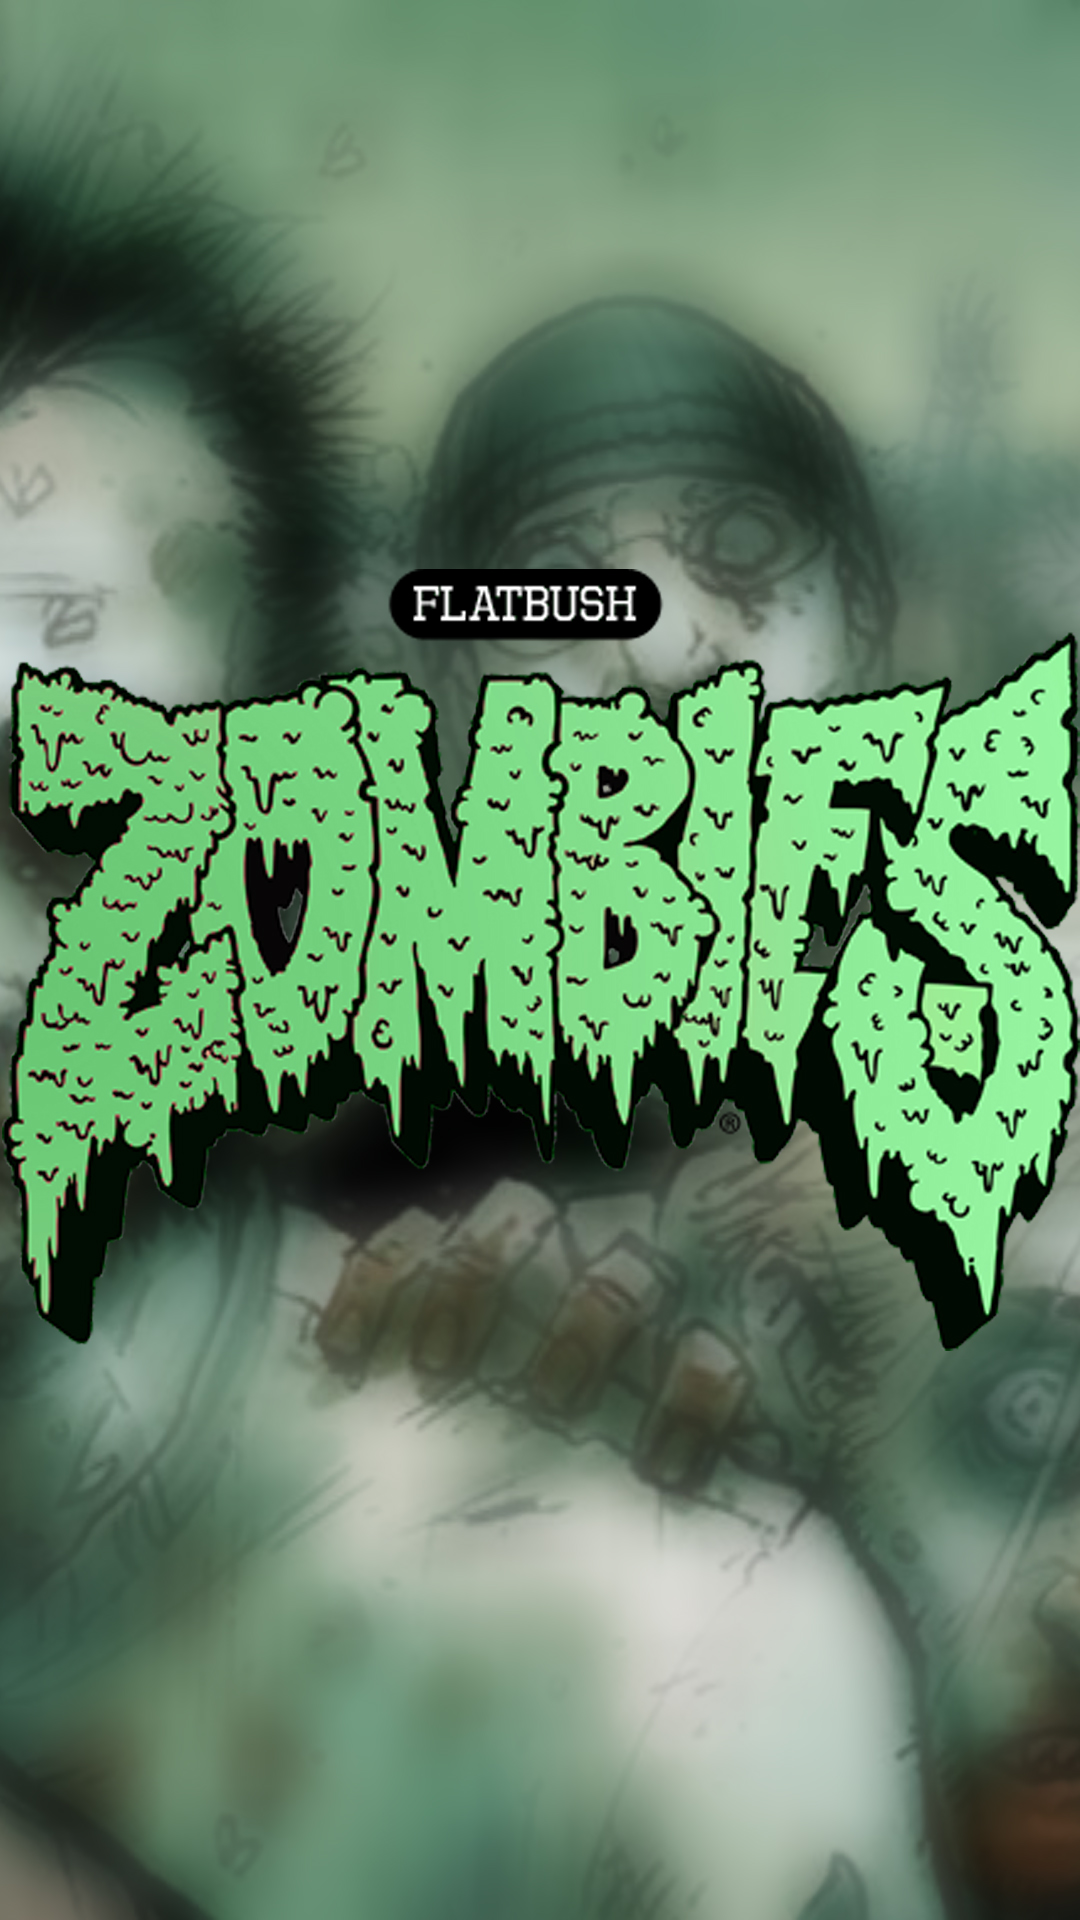 flatbush zombies wallpaper wallpapersafari